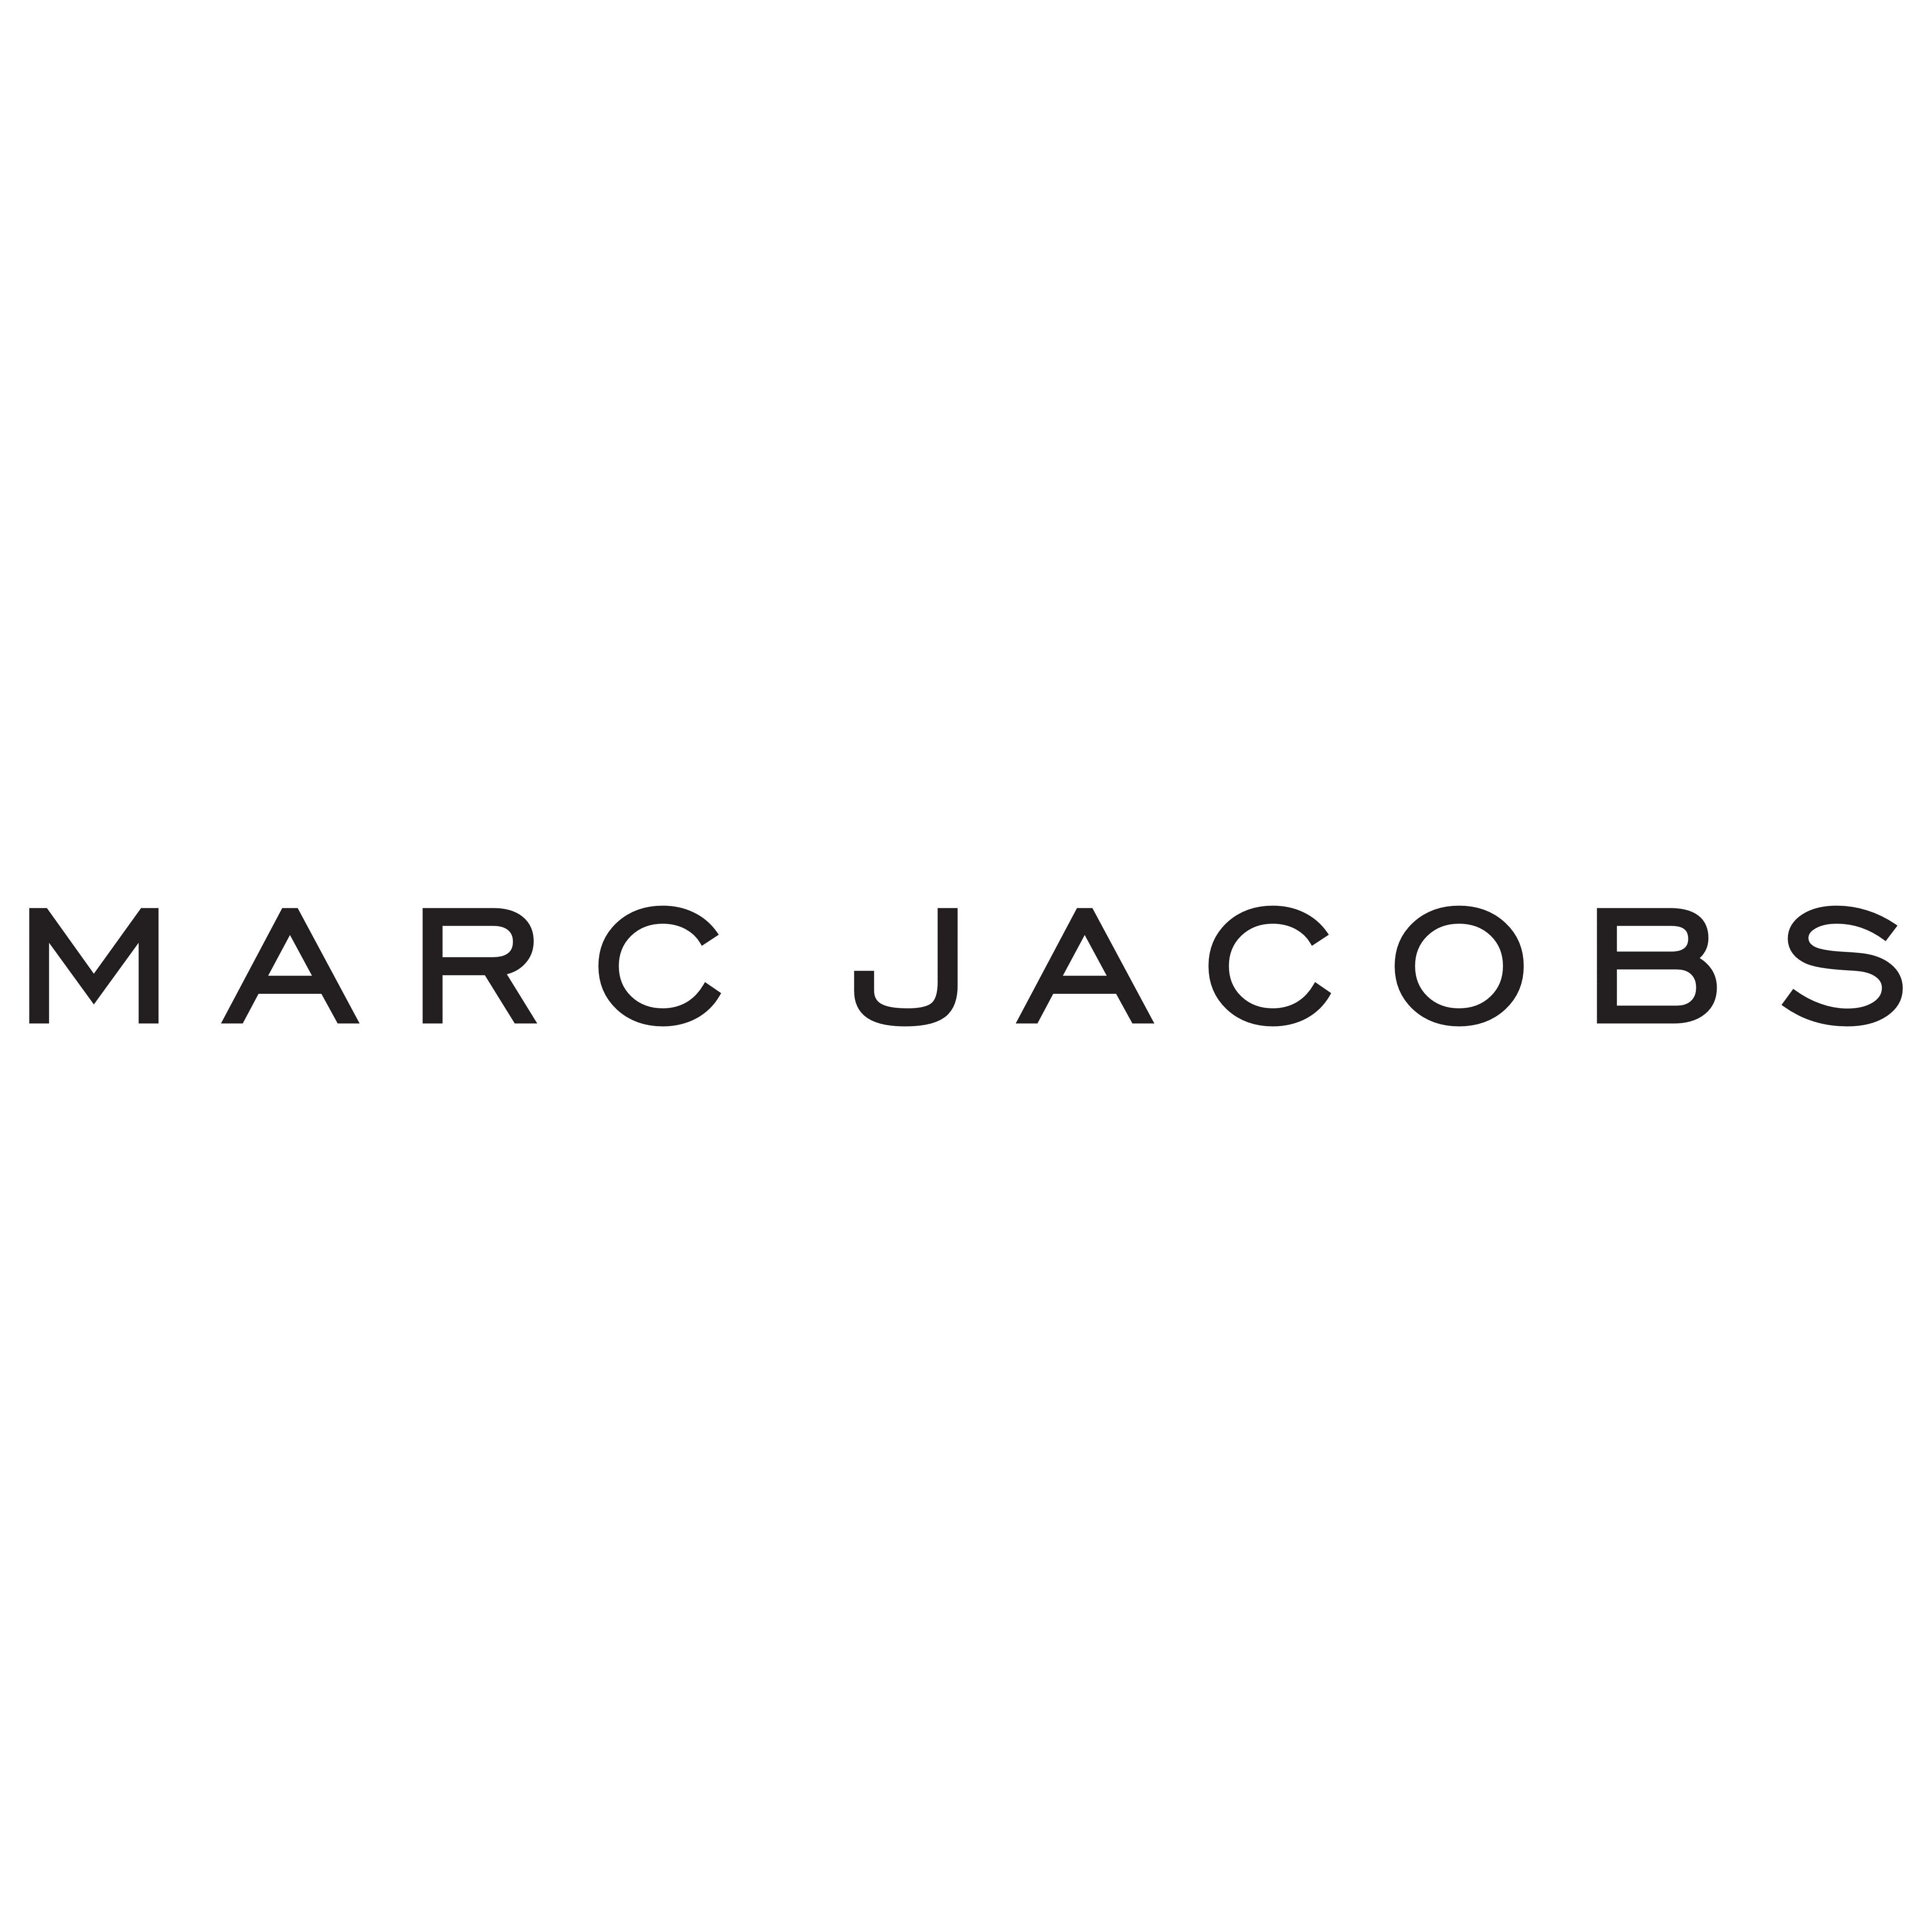 Marc Jacobss